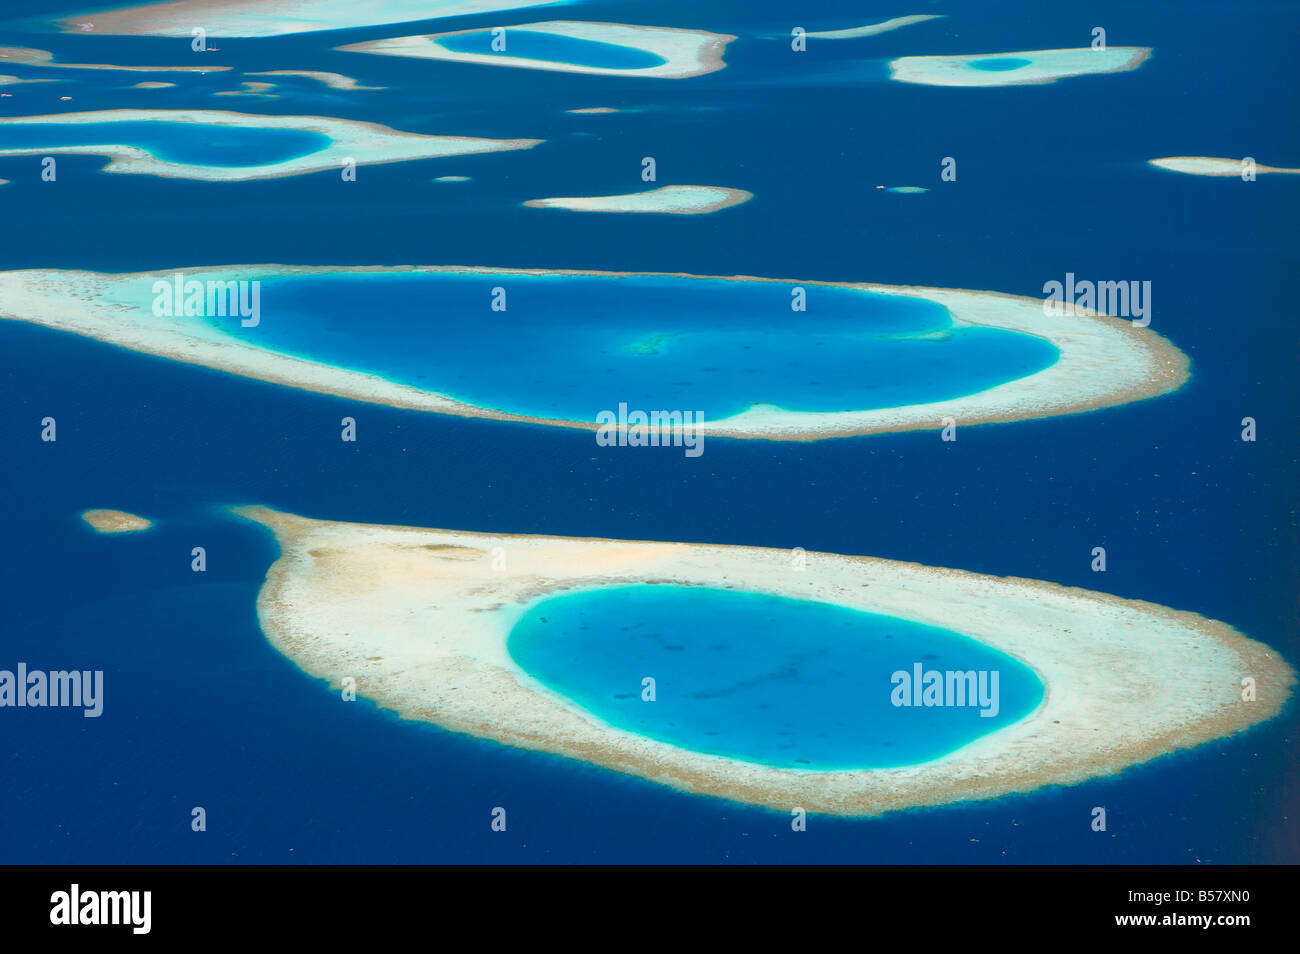 Aerial view of atolls in the Maldive Islands, Indian Ocean, Asia - Stock Image